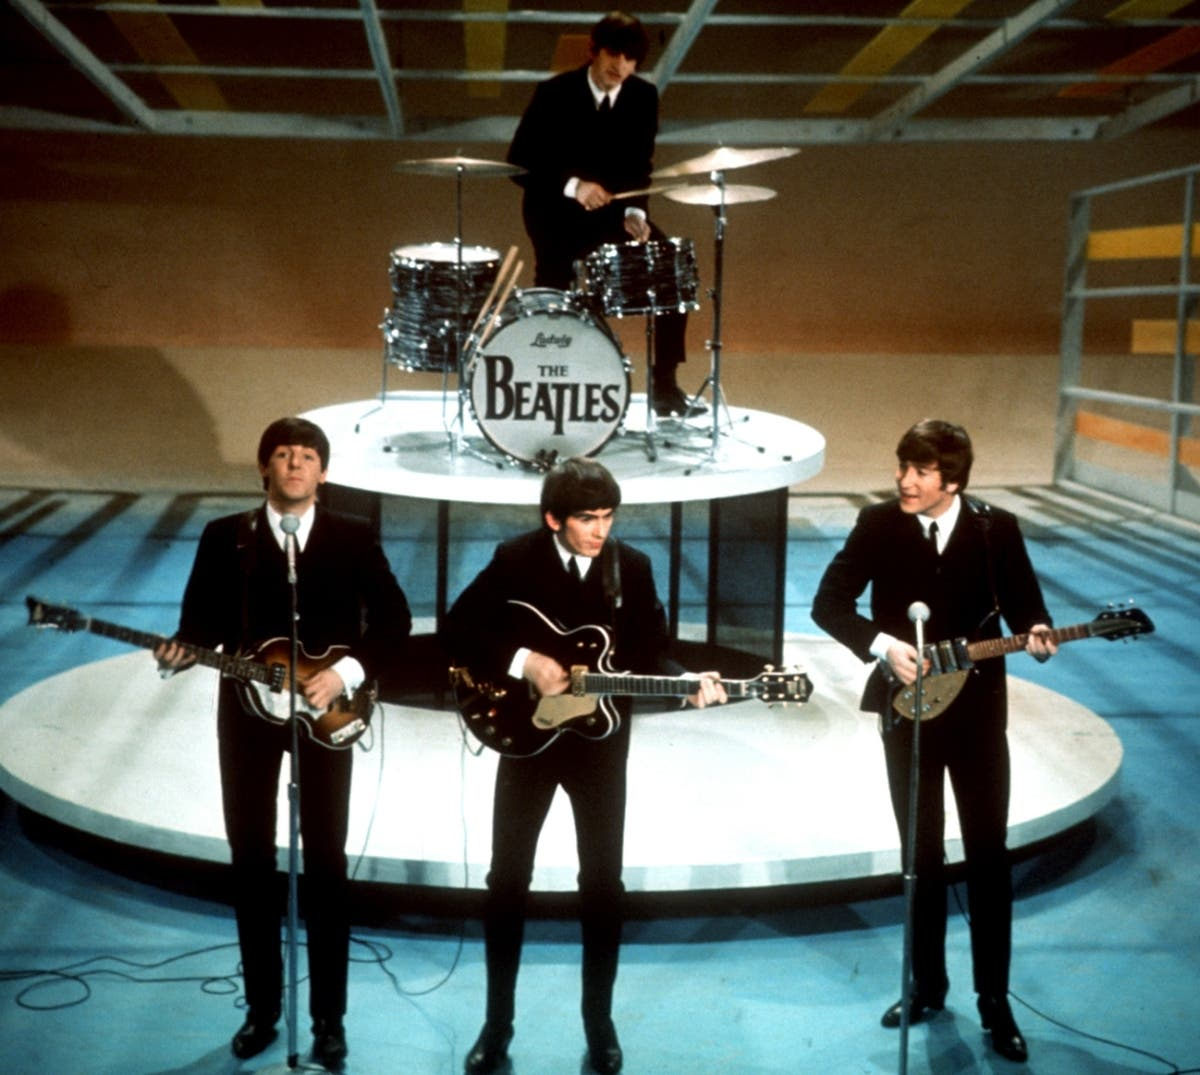 Beatles Fan To Open British-Themed Pub In Waukesha